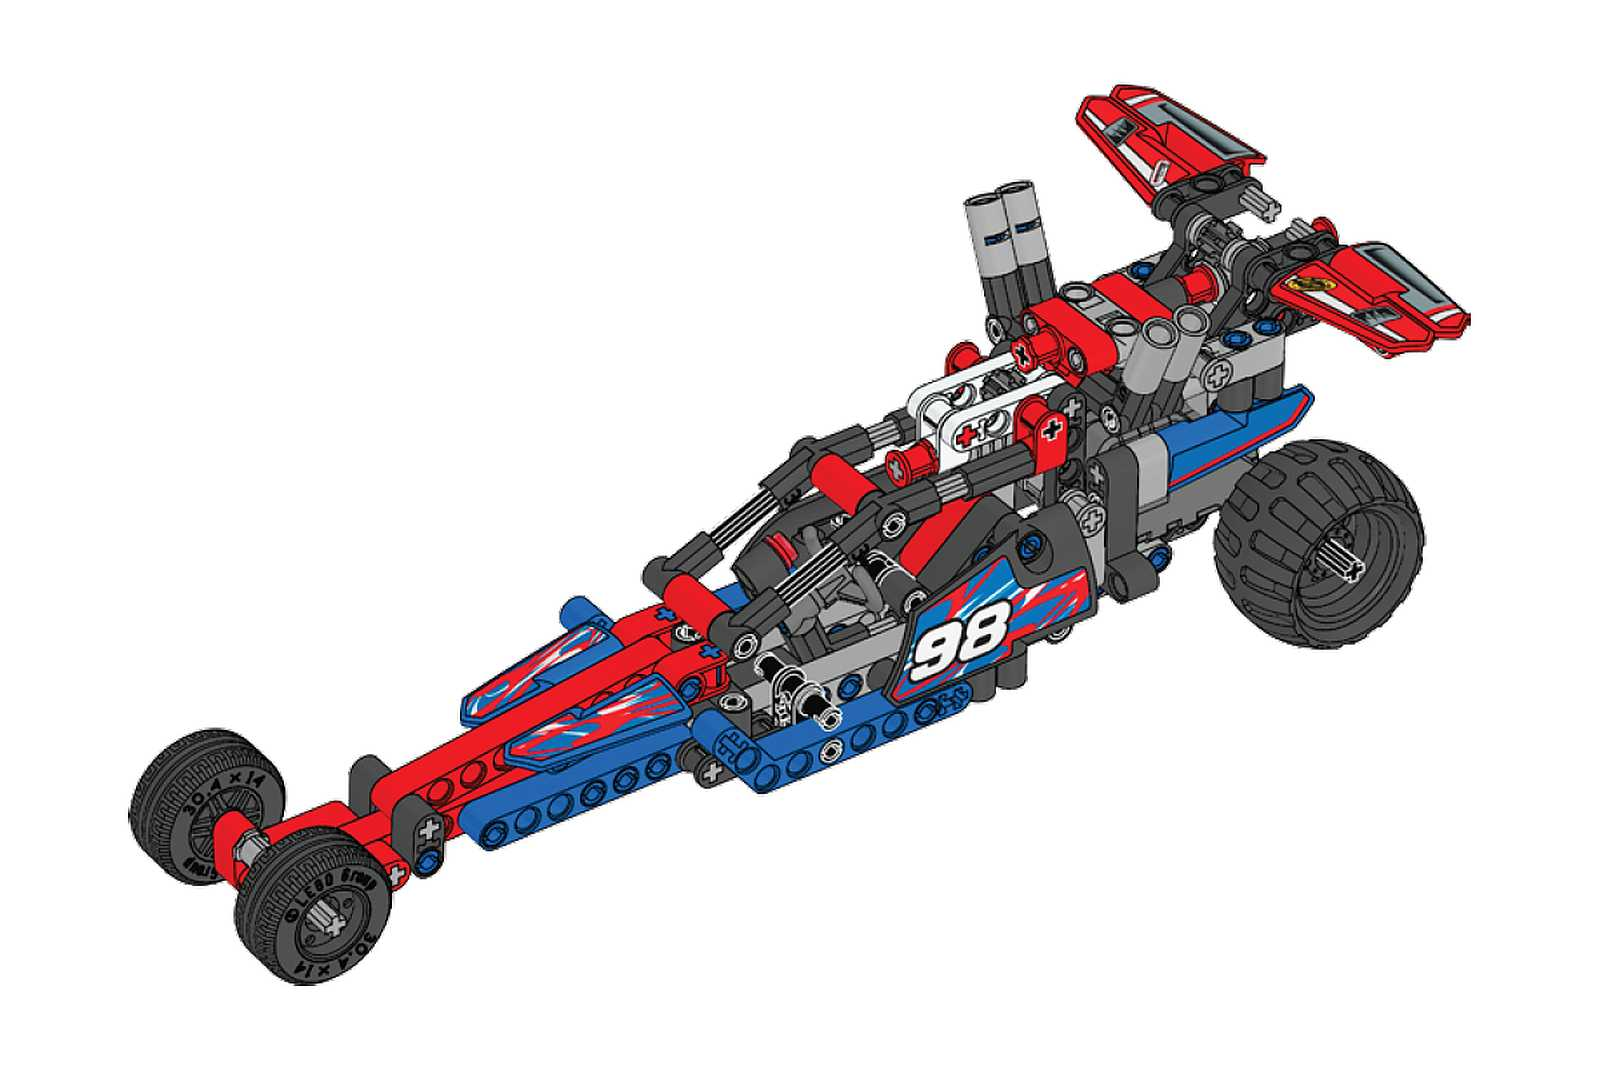 42010 42011 Dragster Pictorial Review Lego Technic